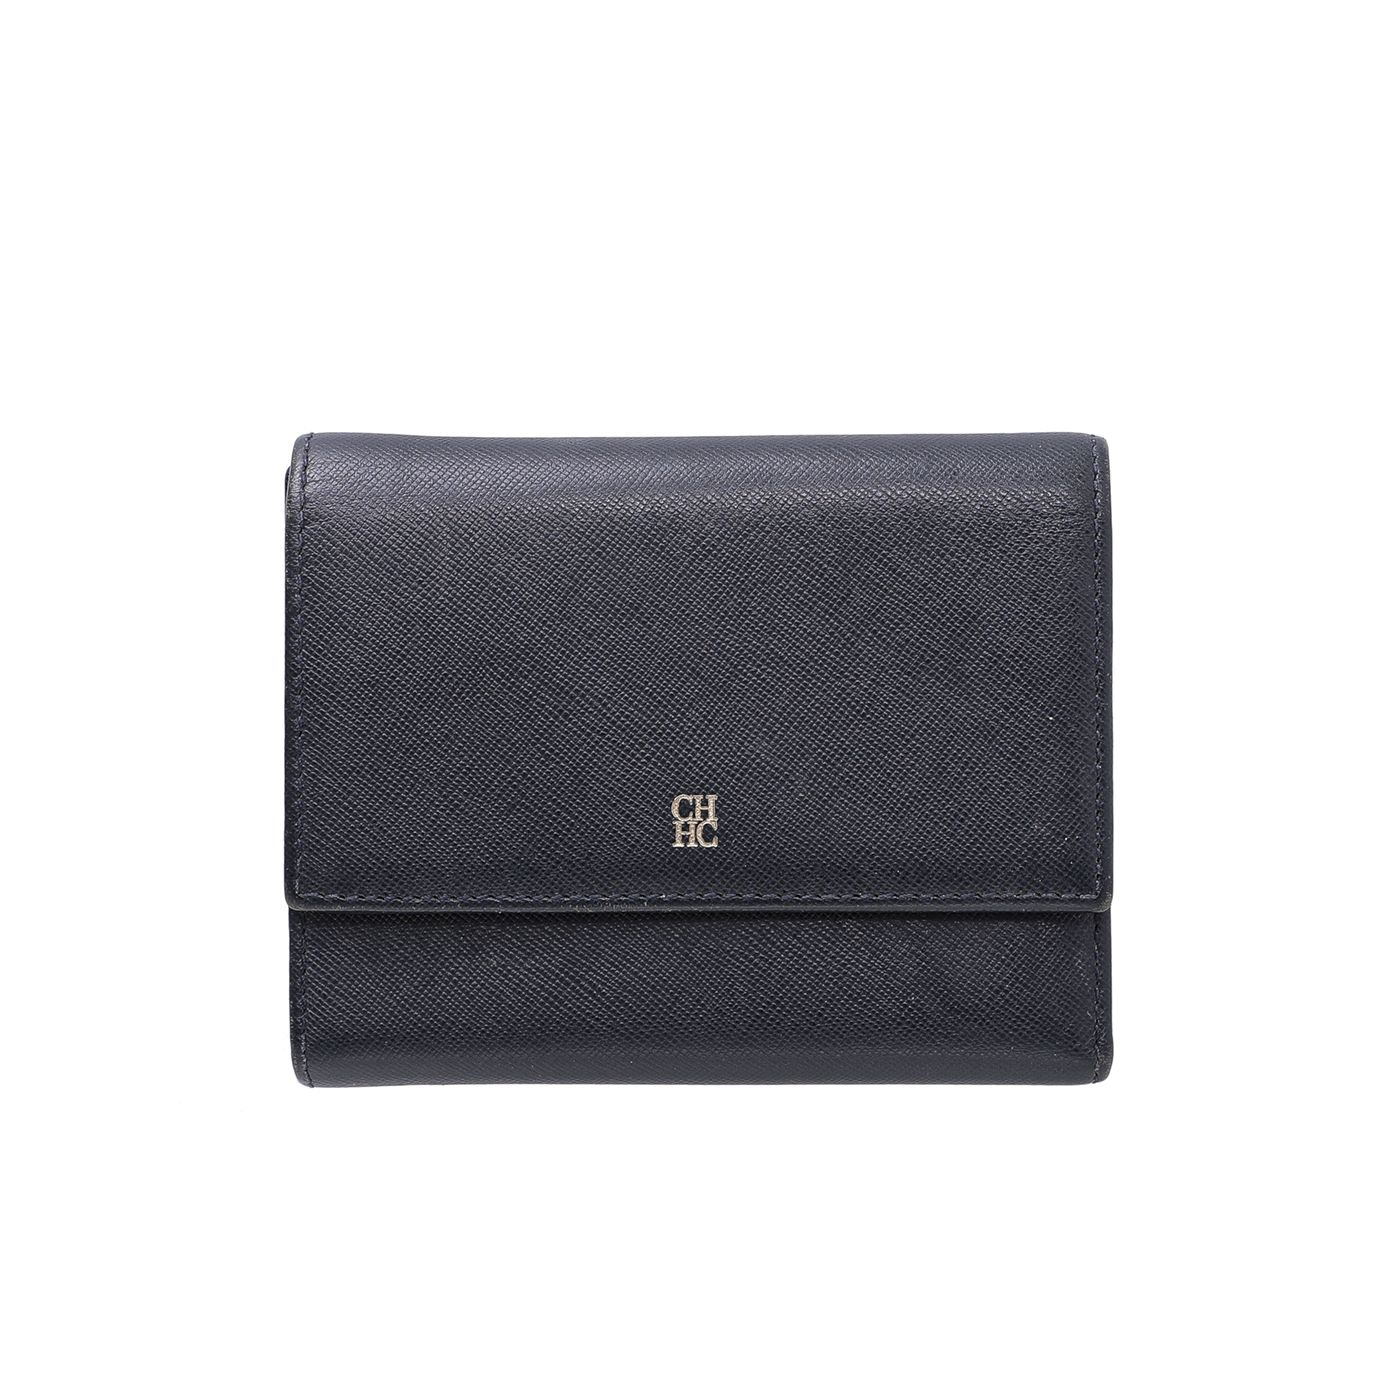 Carolina Herrera Navy Blue Trifold Wallet w/ Removable Coin Purse